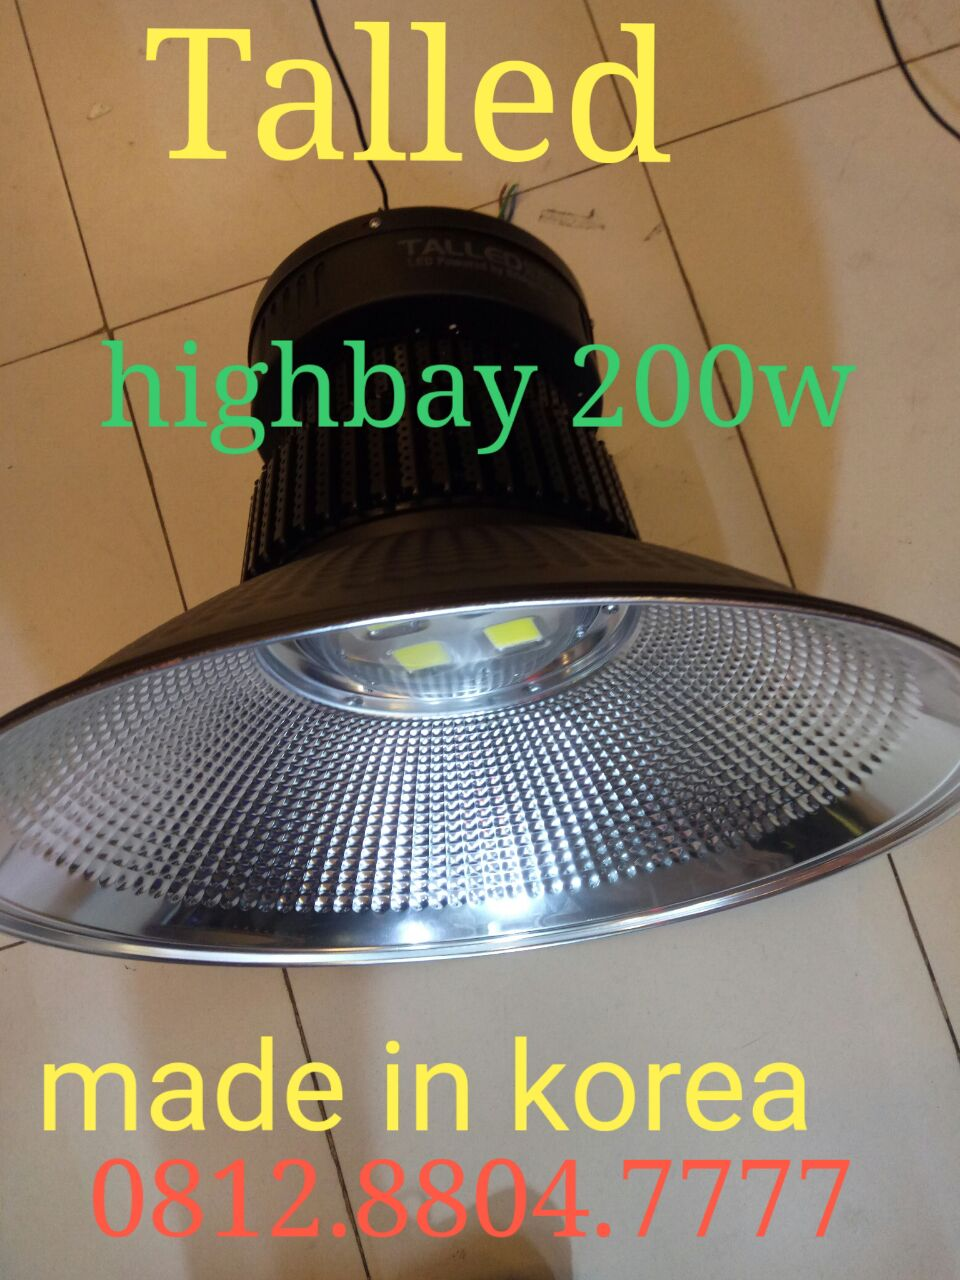 Lampu industri highbay led 200w merk Talled made in korea